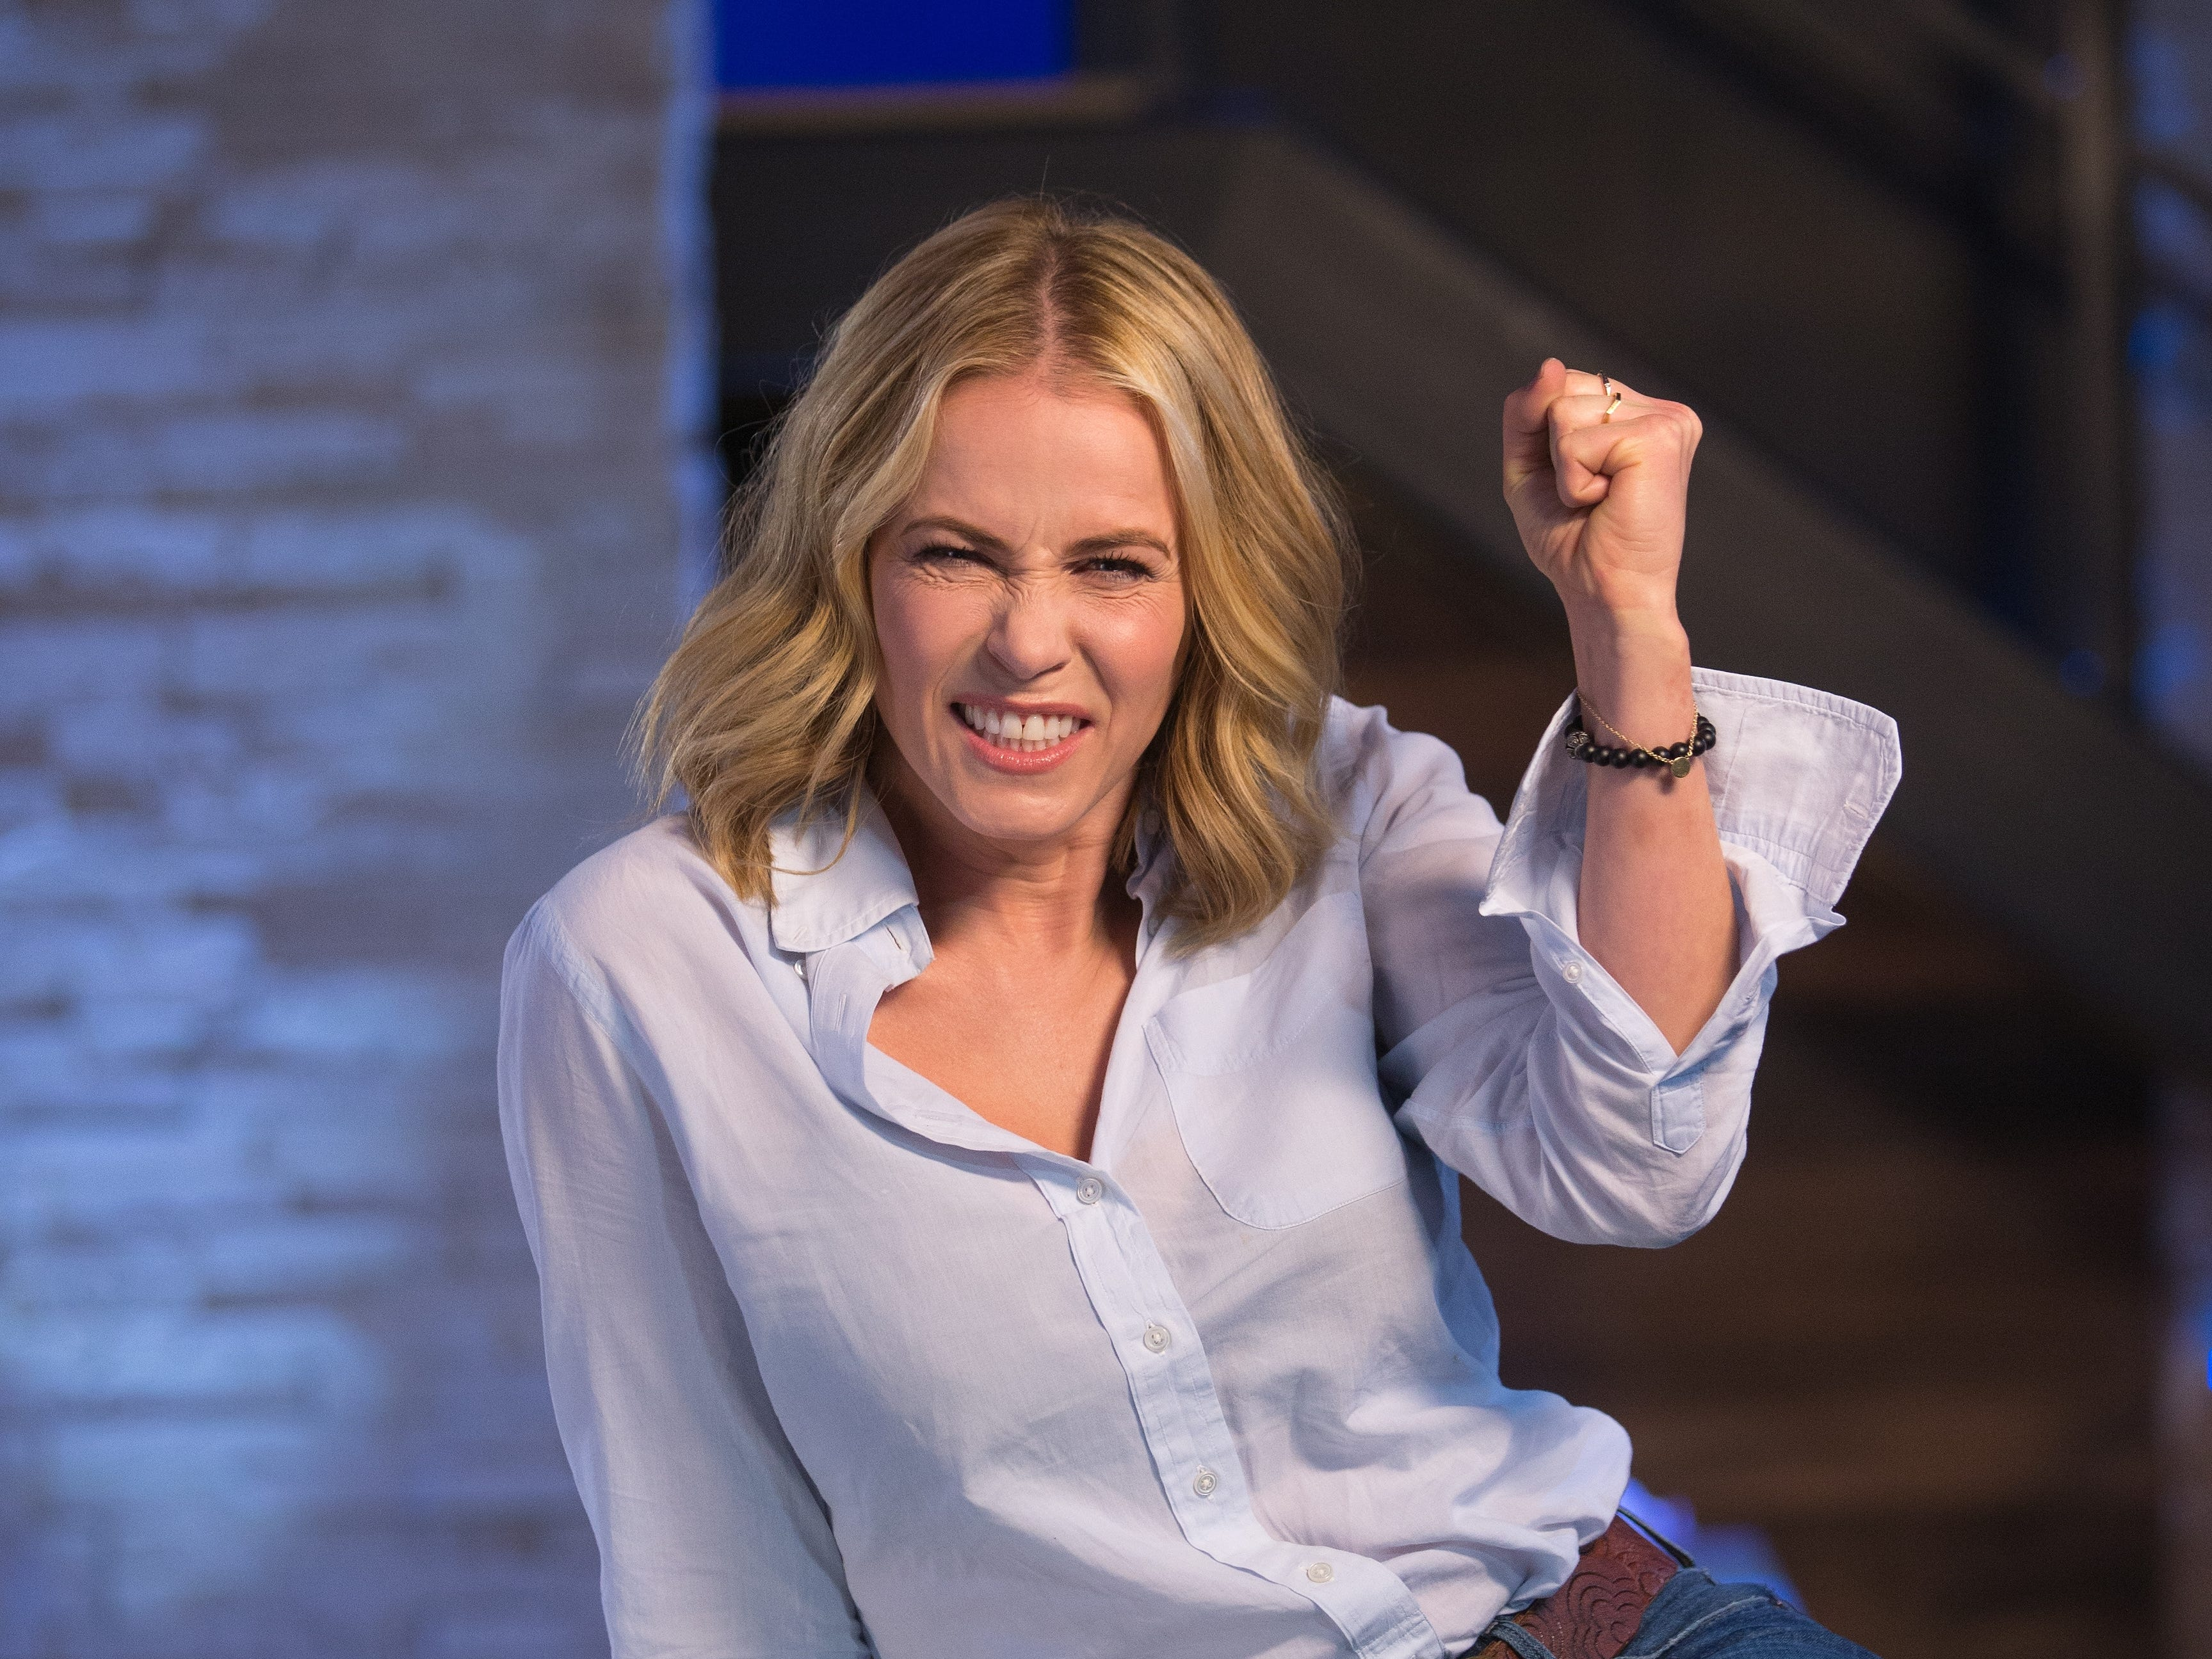 5/4/16 2:51:04 PM -- Culver City, CA  -- Chelsea Handler prepares to debut Netflix's first-ever talk show, 'Chelsea.'  Handler is photographed on the set of her new show at Sony Pictures Studios in Culver City, CA--    Photo by Dan MacMedan, USA TODAY contract photographer ORG XMIT:  DM 134860 Chelsea Handler 05/04 [Via MerlinFTP Drop]